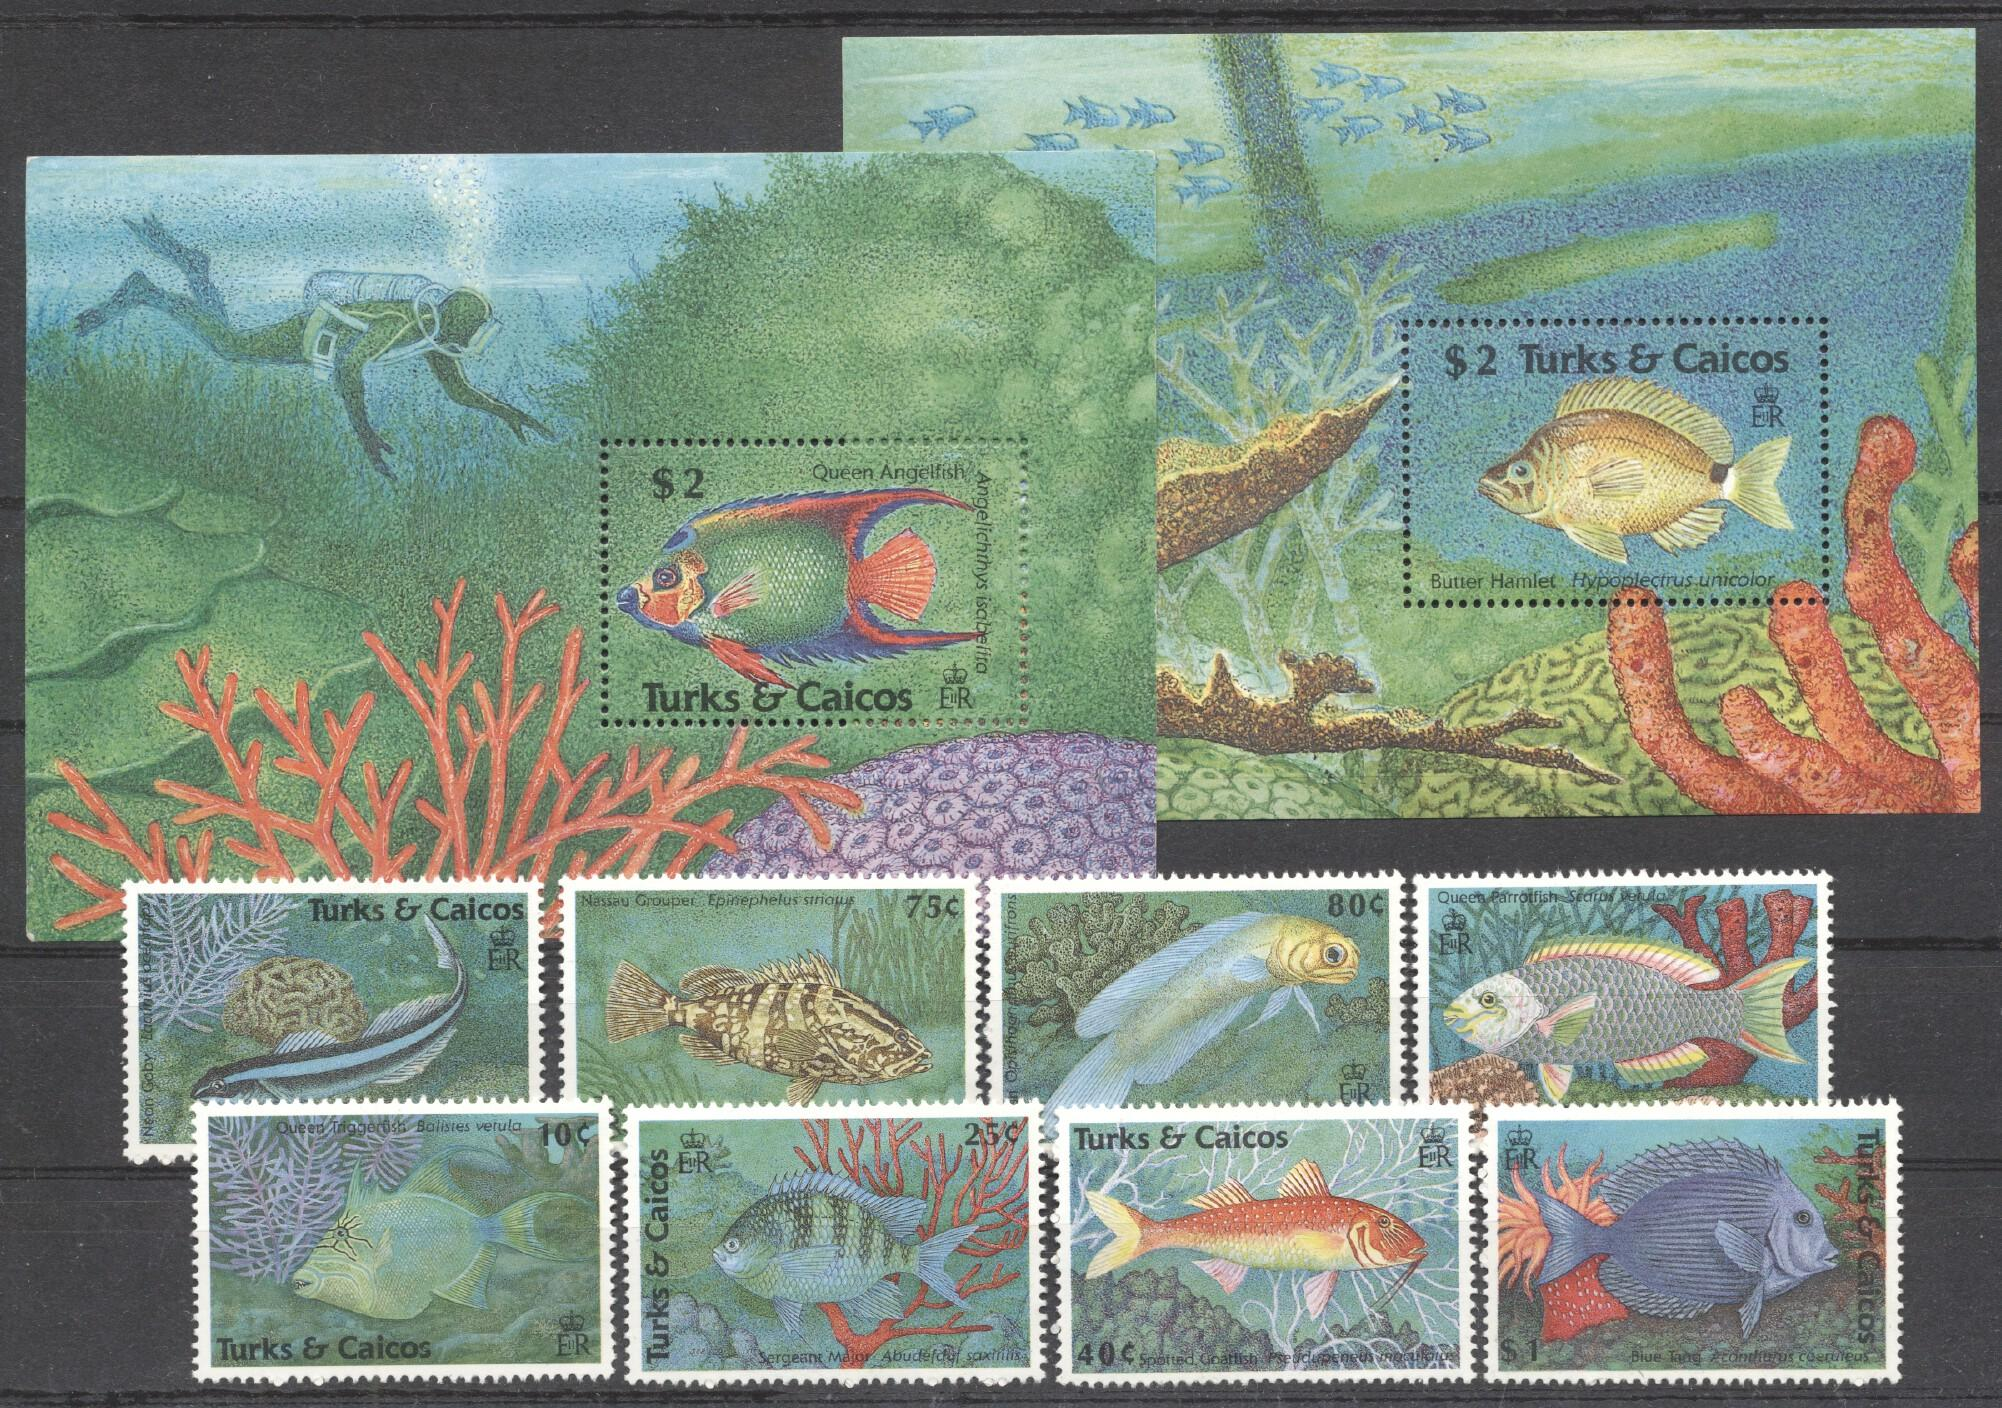 Stamps with Fish from Turks & Caicos Islands (image for product #255282)